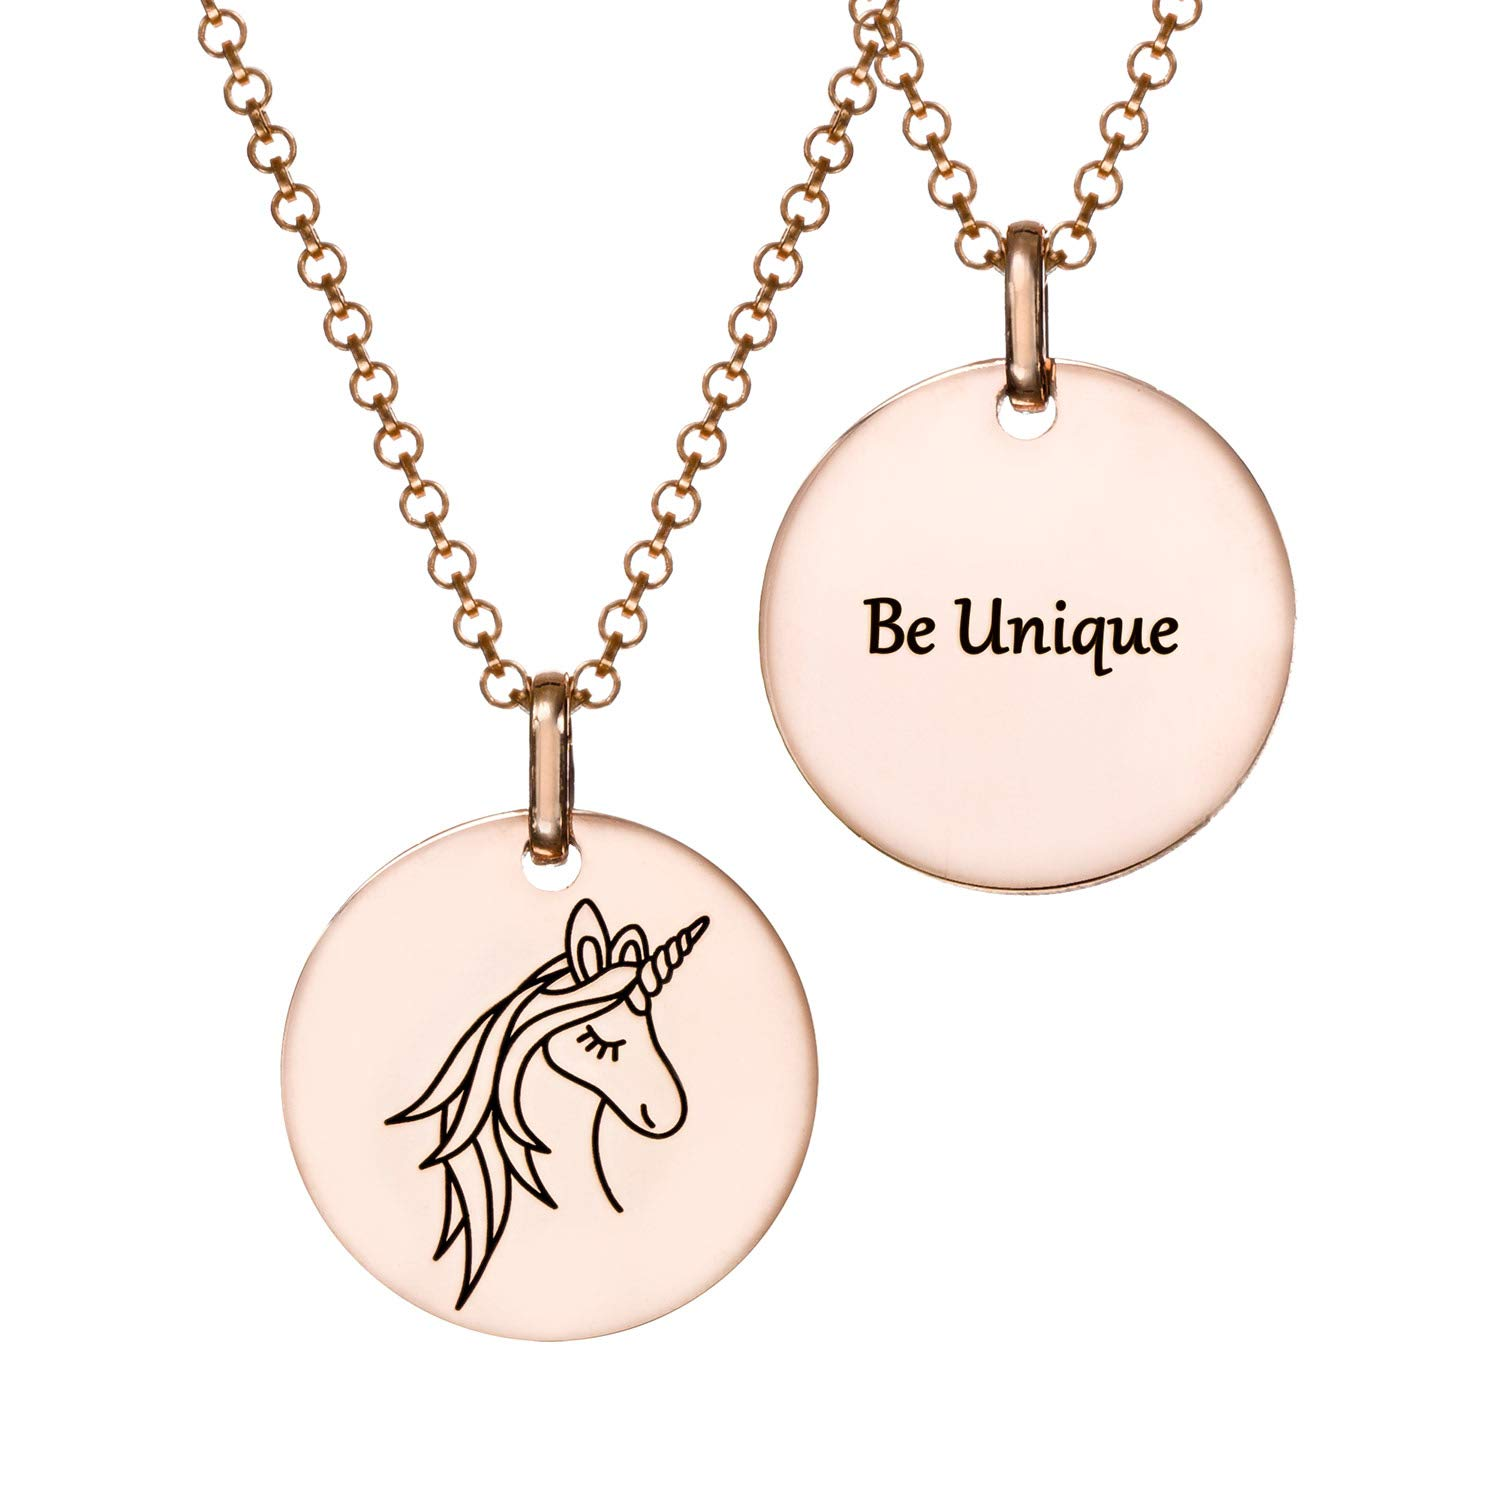 MyNameNecklace Unicorn Pendant -Engraved Be Unique or Personalized Pendant- Inspriational Jewelry